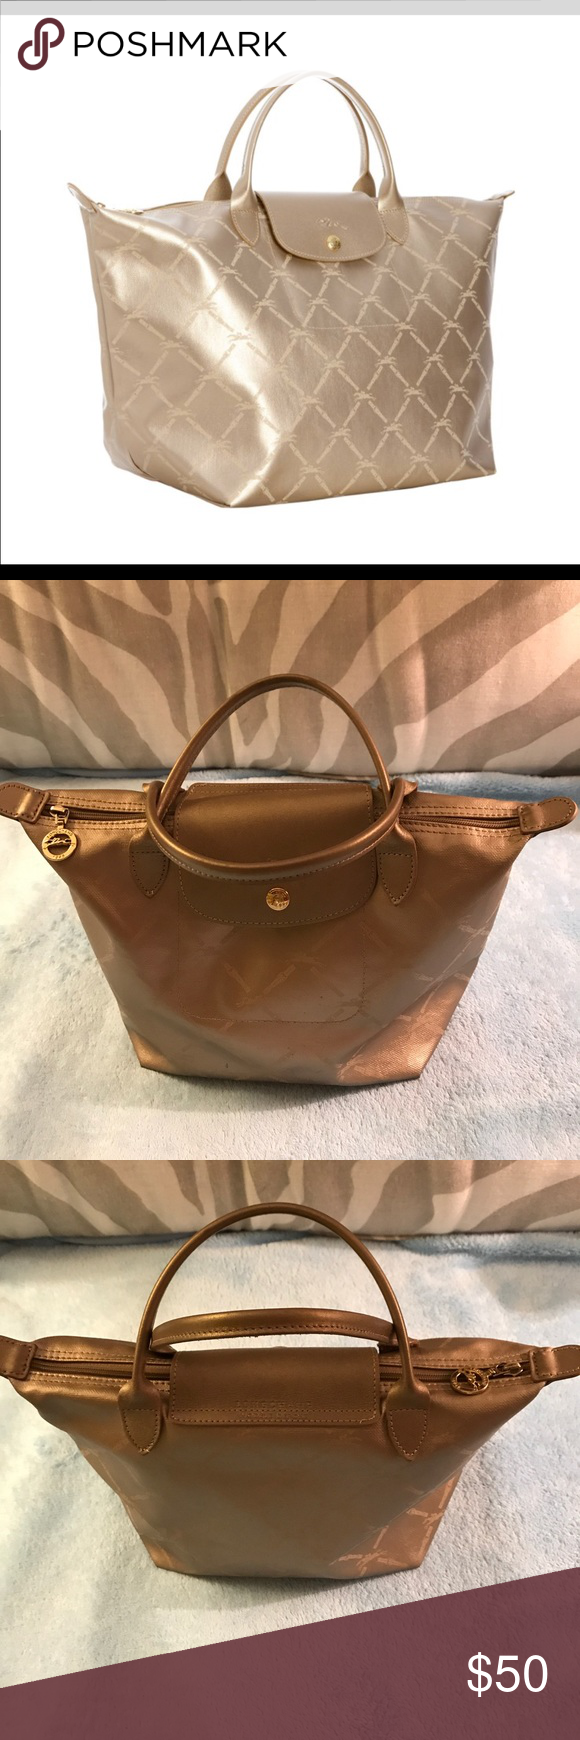 150b5ddbe412 Longchamp Longchamp mini tote metallic bag in short shoulder strap in good  used condition Longchamp Bags Mini Bags